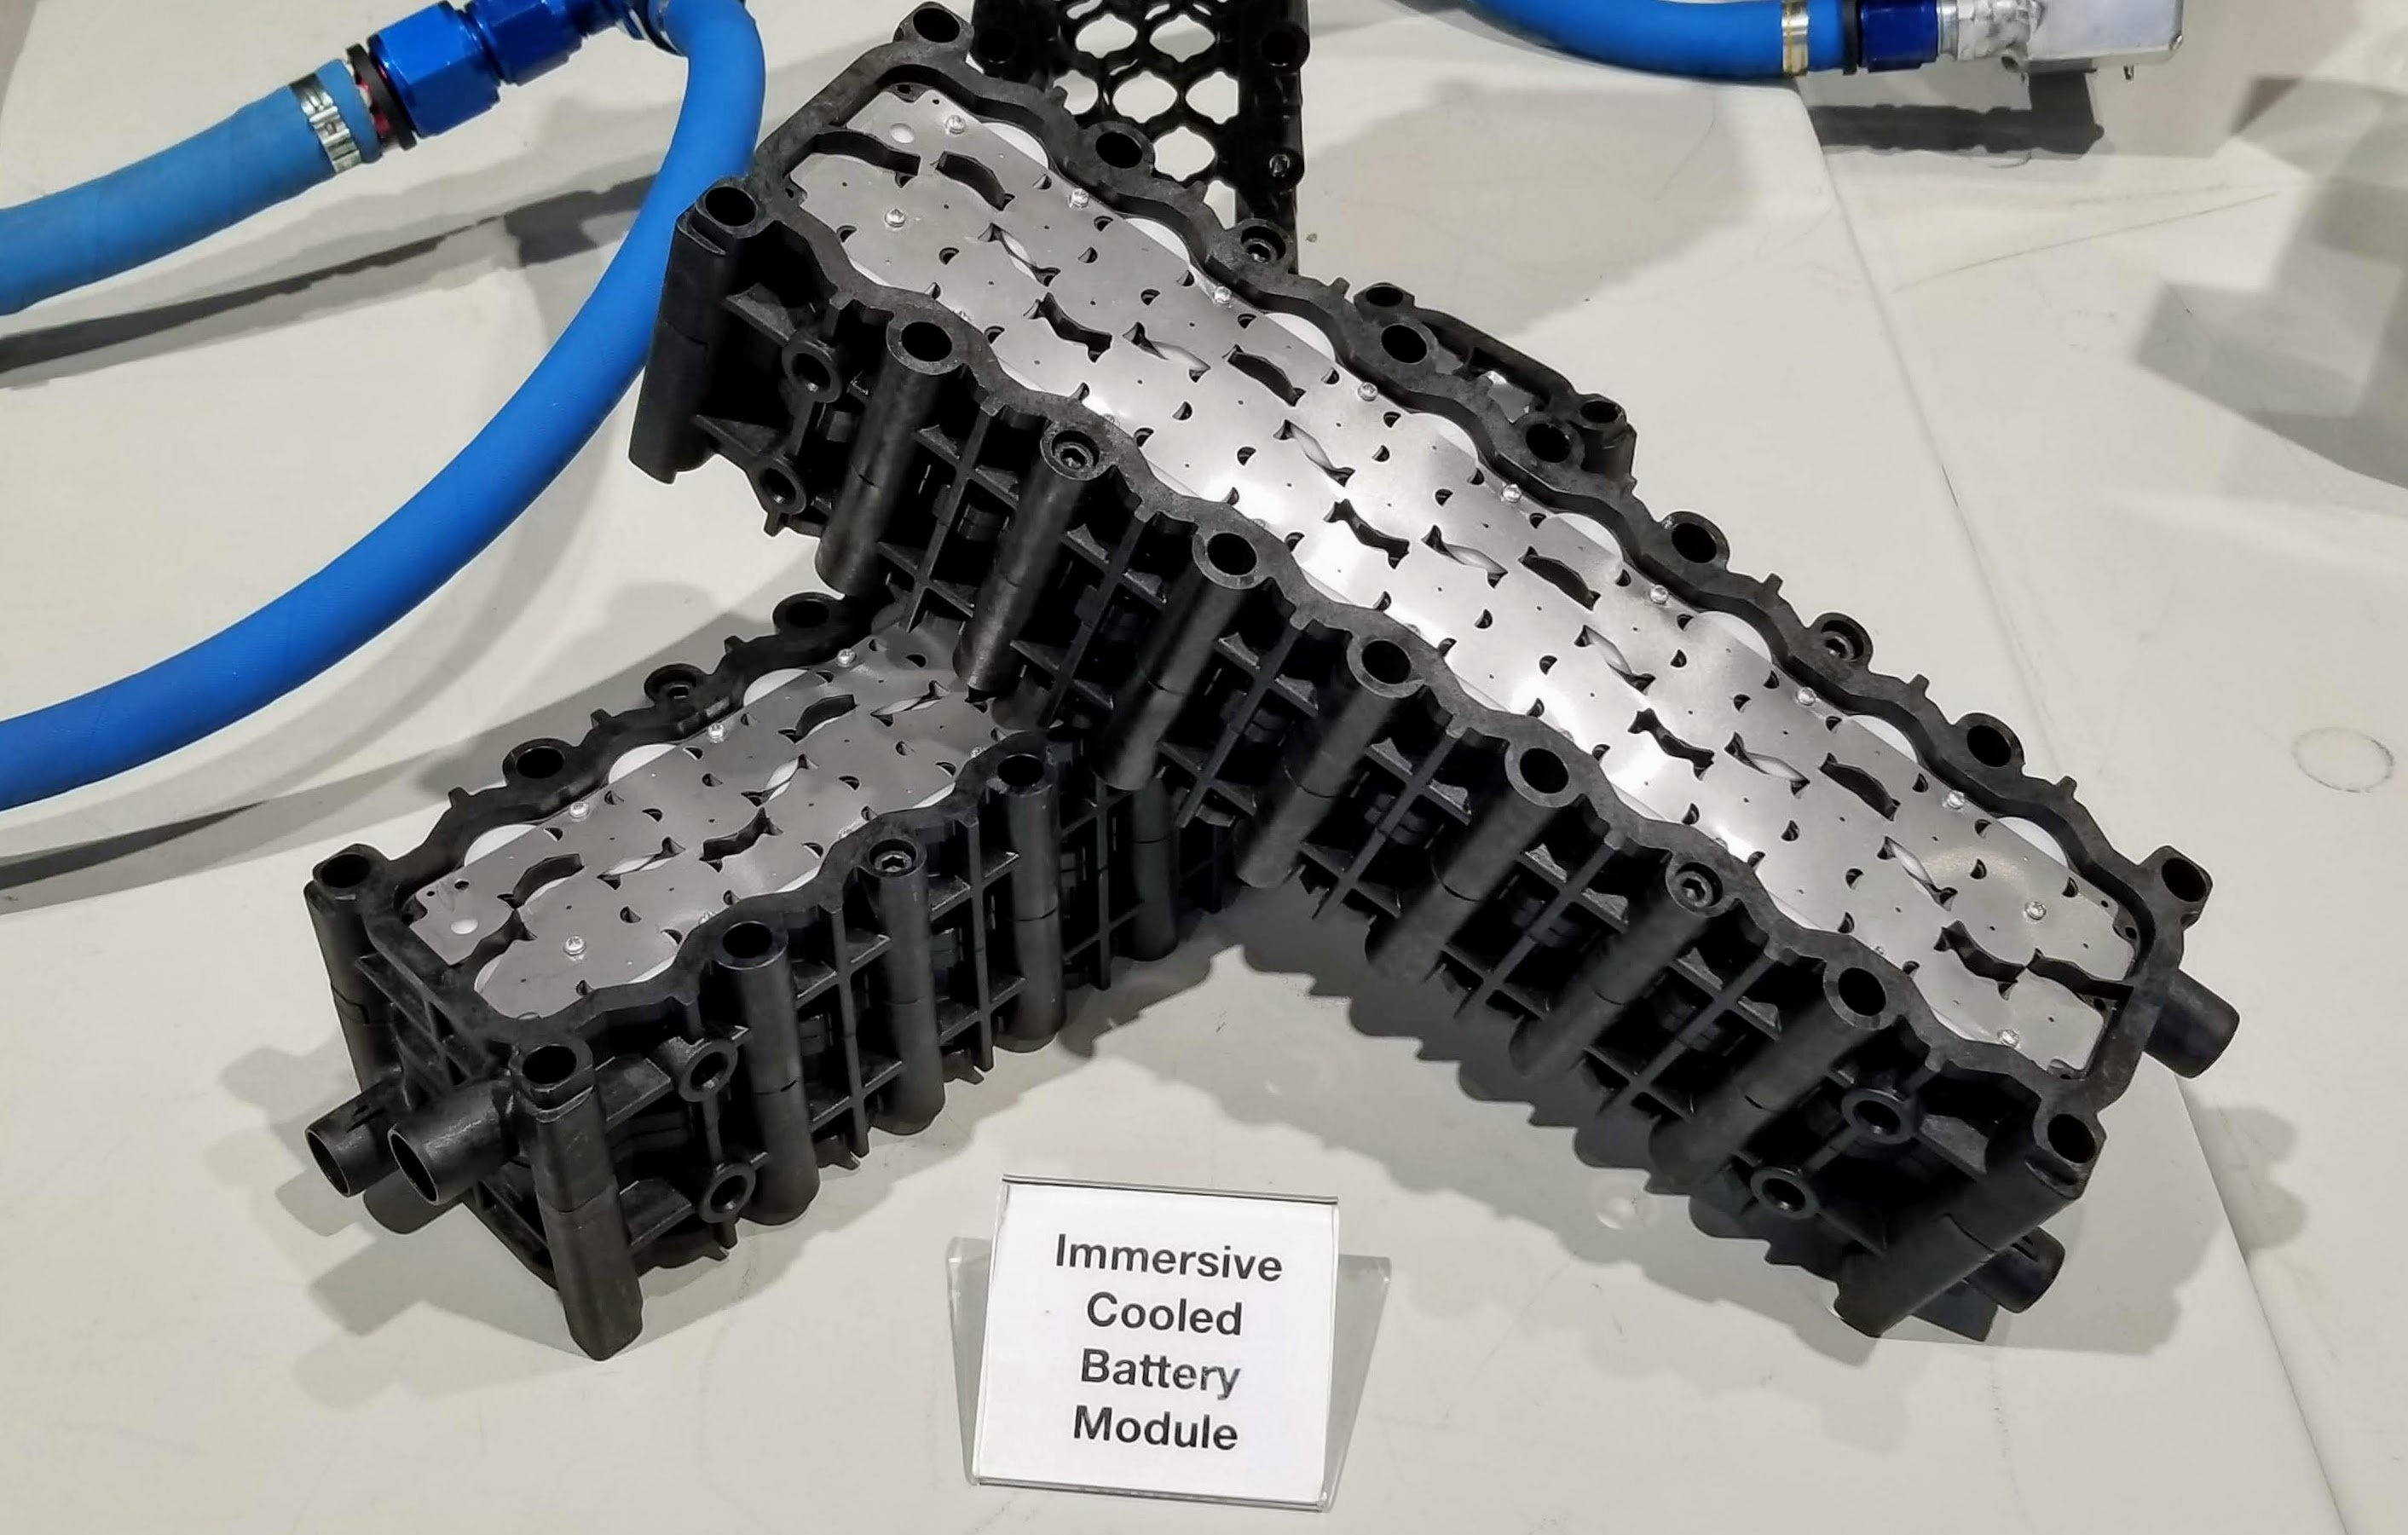 Immersion Cooling Could Make Electric Vehicle Batteries Far More Efficient